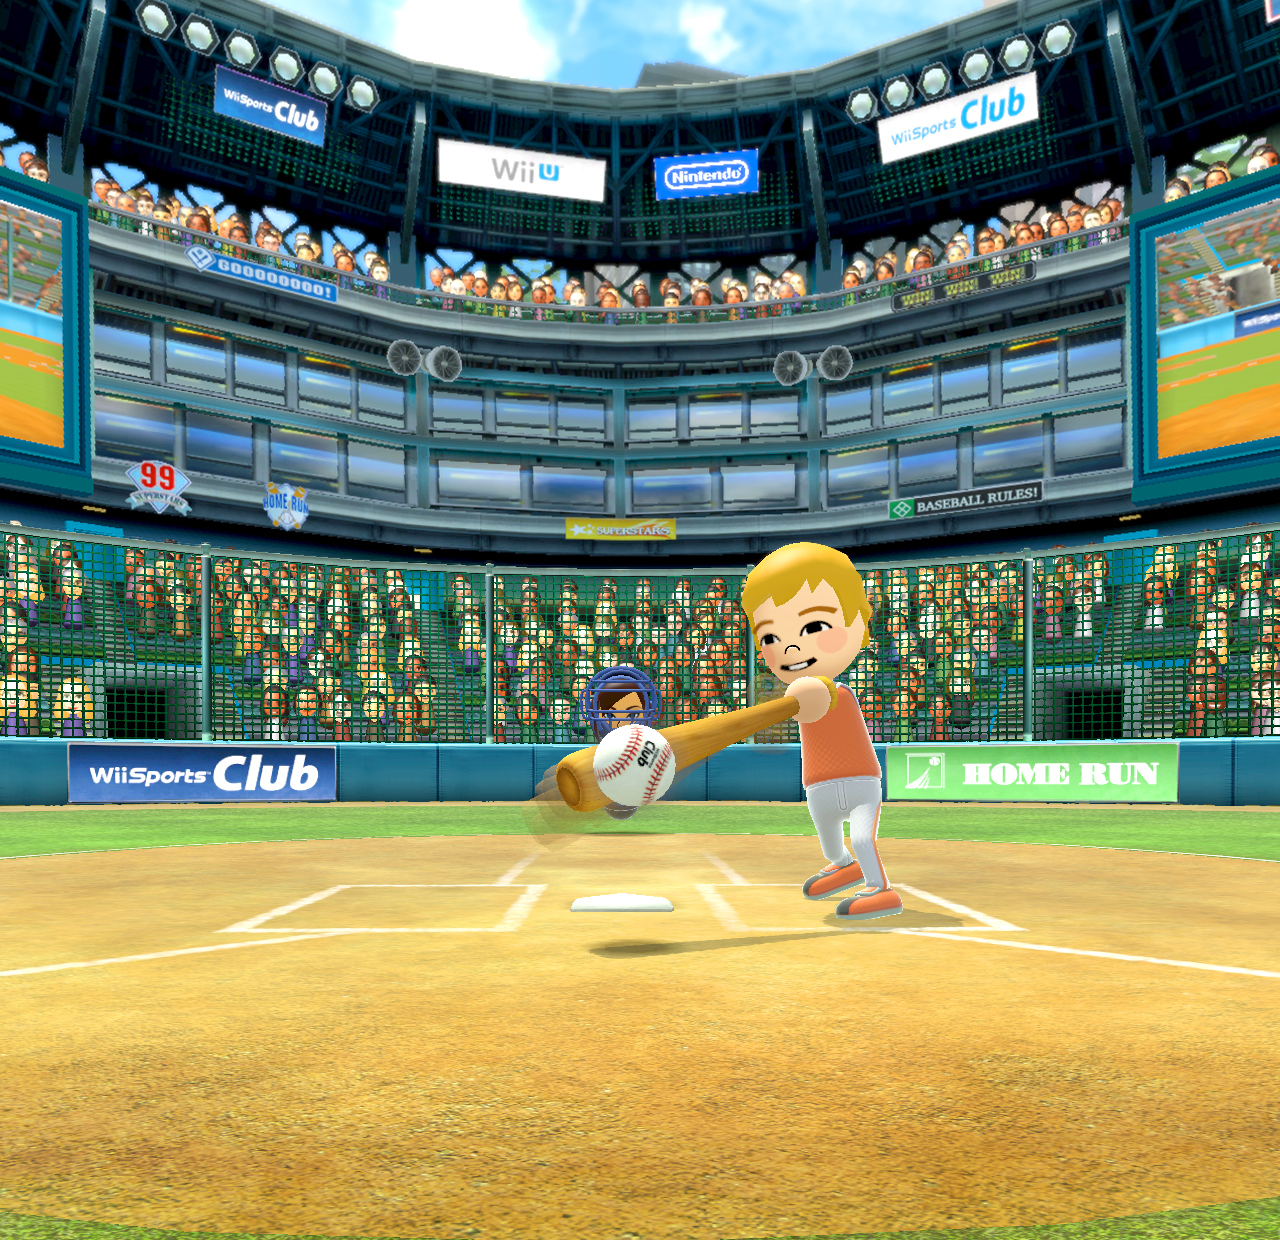 Wii Sports Club feels like a new experience, with the addition of crisp high-definition graphics and Wii MotionPlus technology, as well as creative uses of the Wii U GamePad. (Photo: Business Wire)